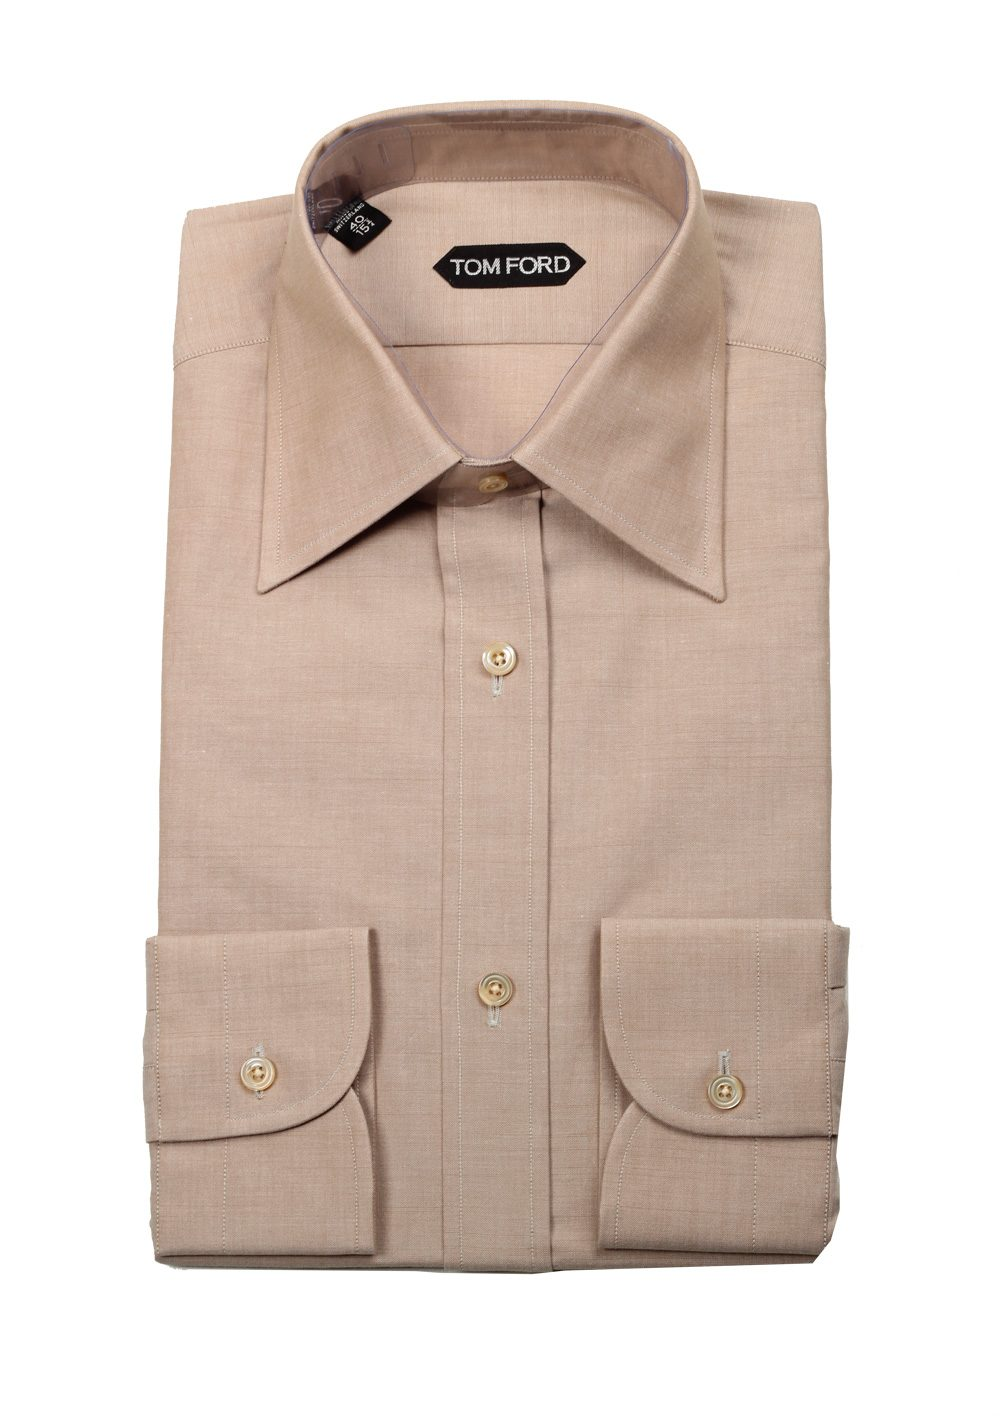 Tom ford solid beige dress shirt size 40 15 75 u s for Size 15 dress shirt